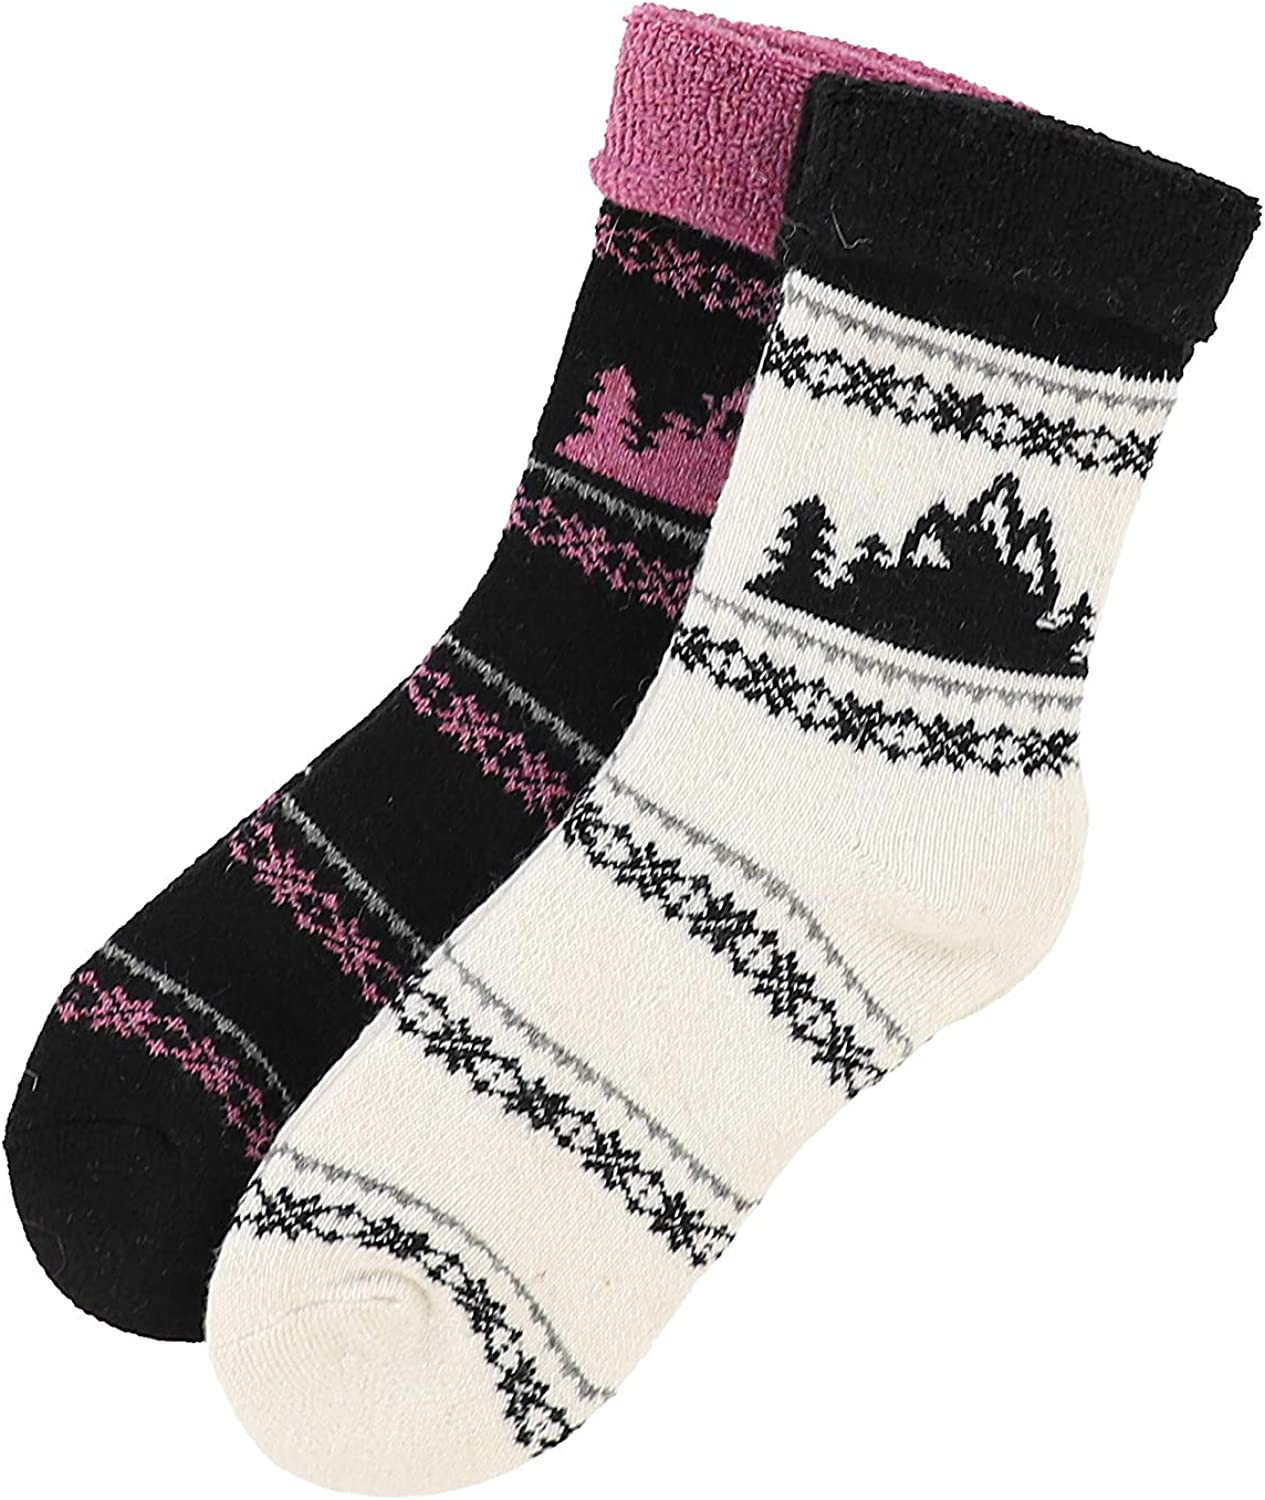 Born Womens Extreme Heat Cabin Sock Turn Cuff Full Cushion Snowflakes and Trees 2 Pairs Shoe Size 4-10